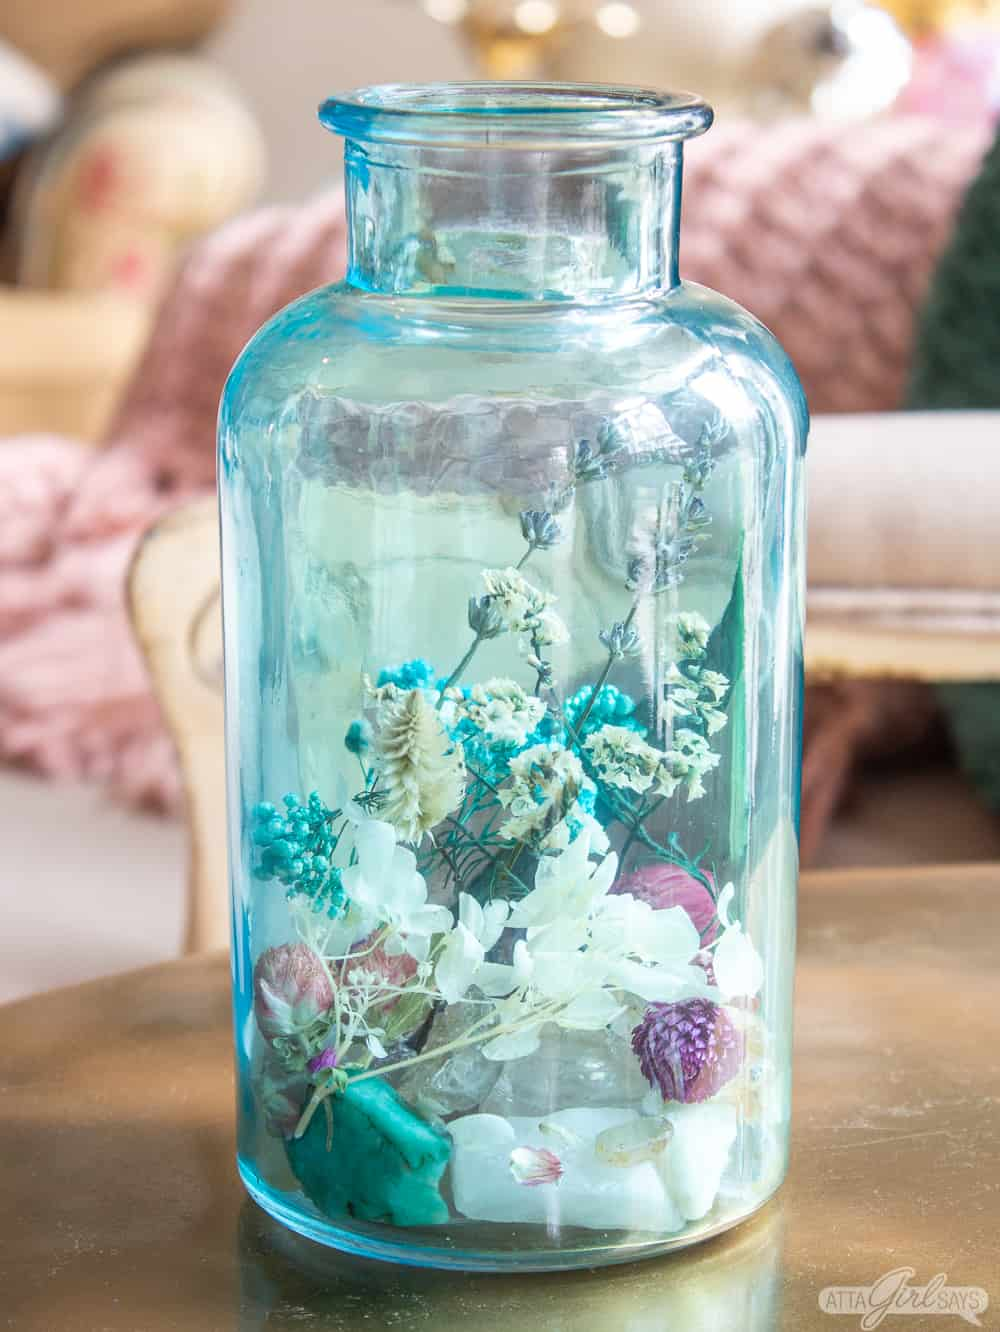 aqua blue glass jar filled with dried florals and gemstone rocks homemade potpourri